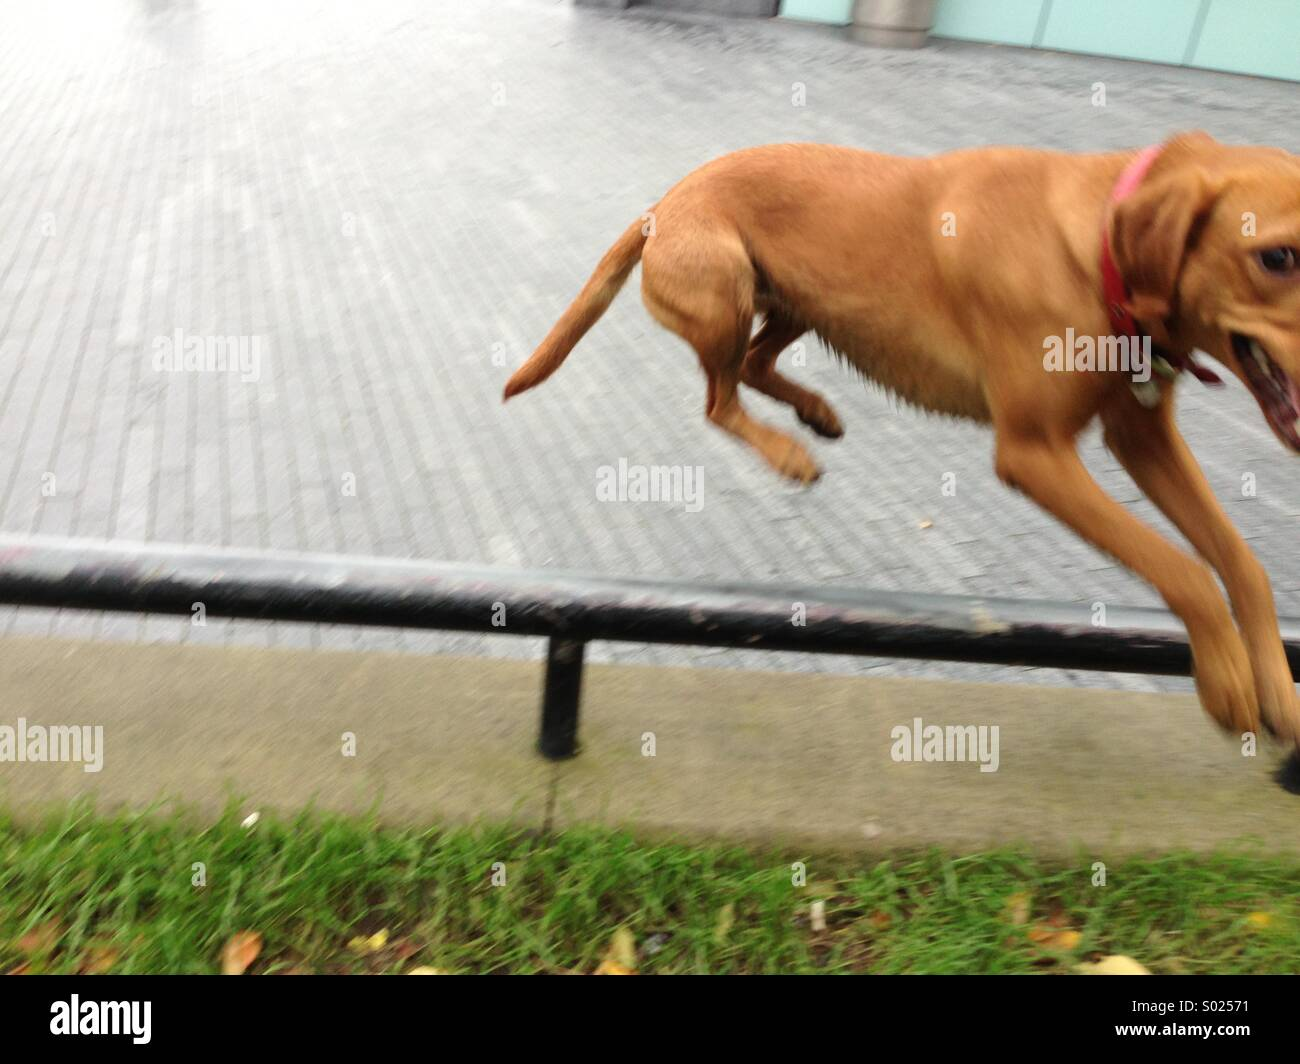 Leaping dog - Stock Image